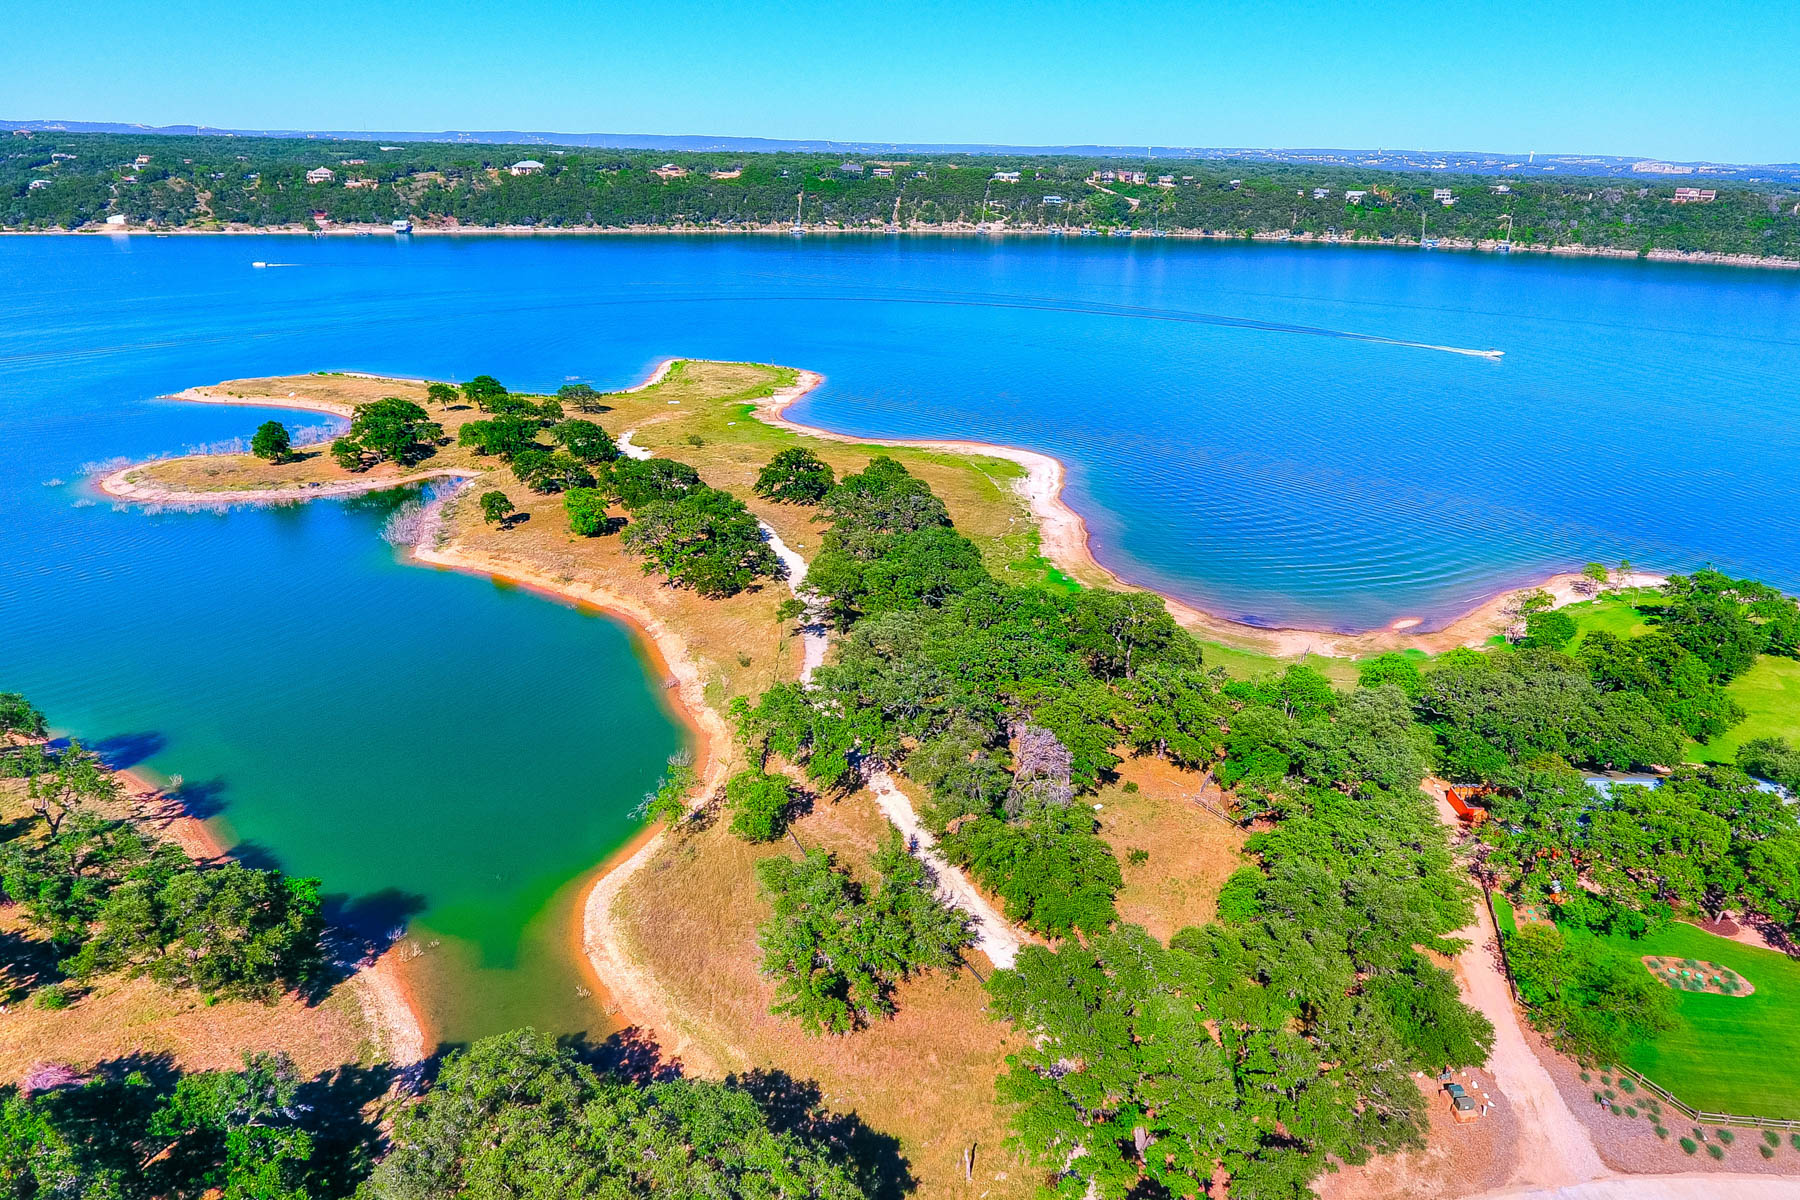 Land for Sale at The Reserve on Lake Travis: 5.87 Waterfront Acres 2208 Cypress Club Pointe, Spicewood, Texas, 78669 United States